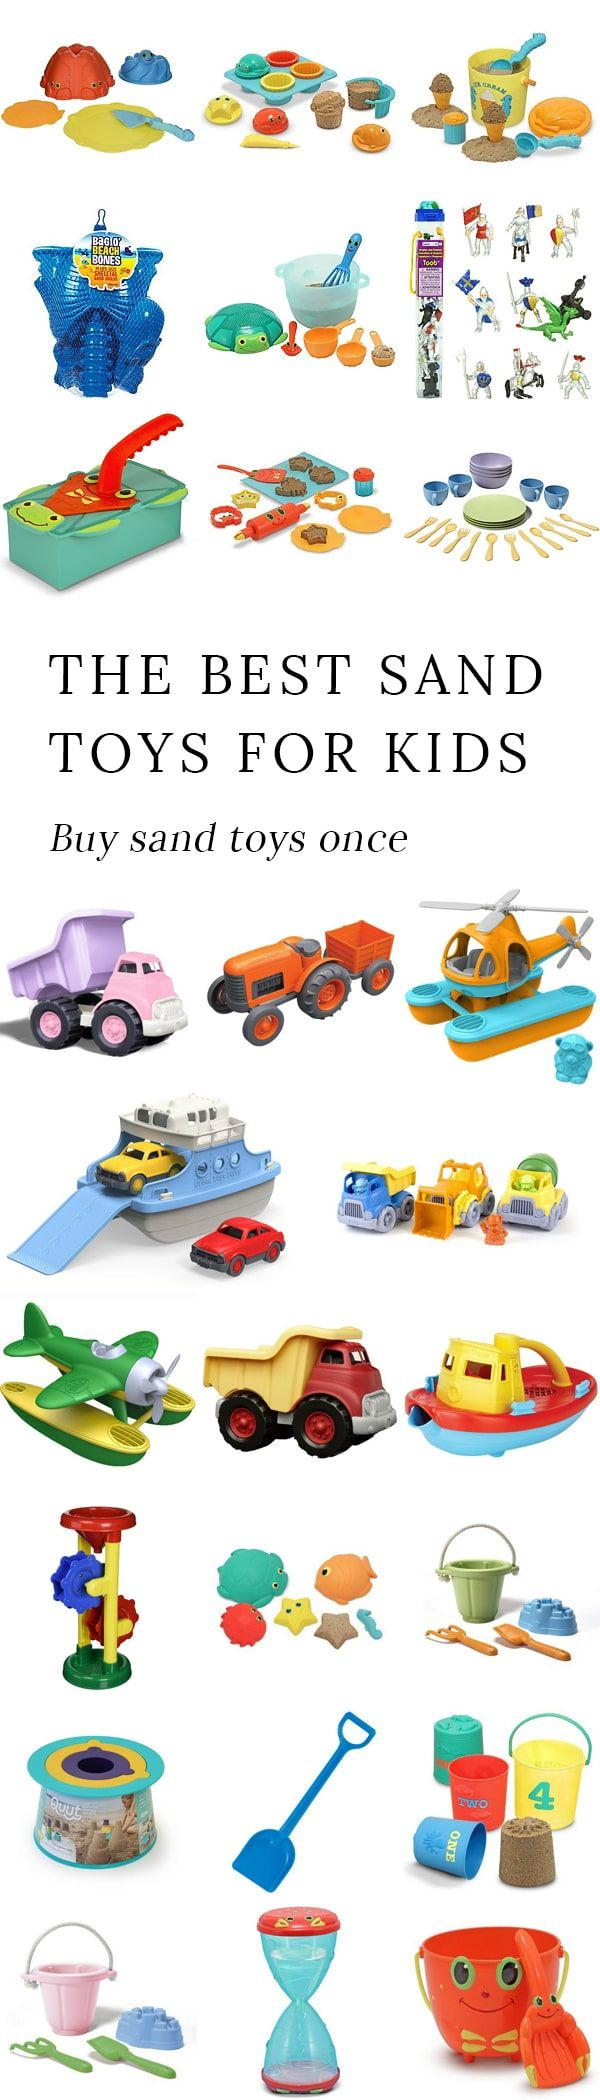 No dkmm cabin nma Q  LNzn  mmfmmPurchasing high quality sand toys for kids once saves money and prevents pounds of worthless, broken plastic from entering the landfill. via @https://www.pinterest.com/fireflymudpie/